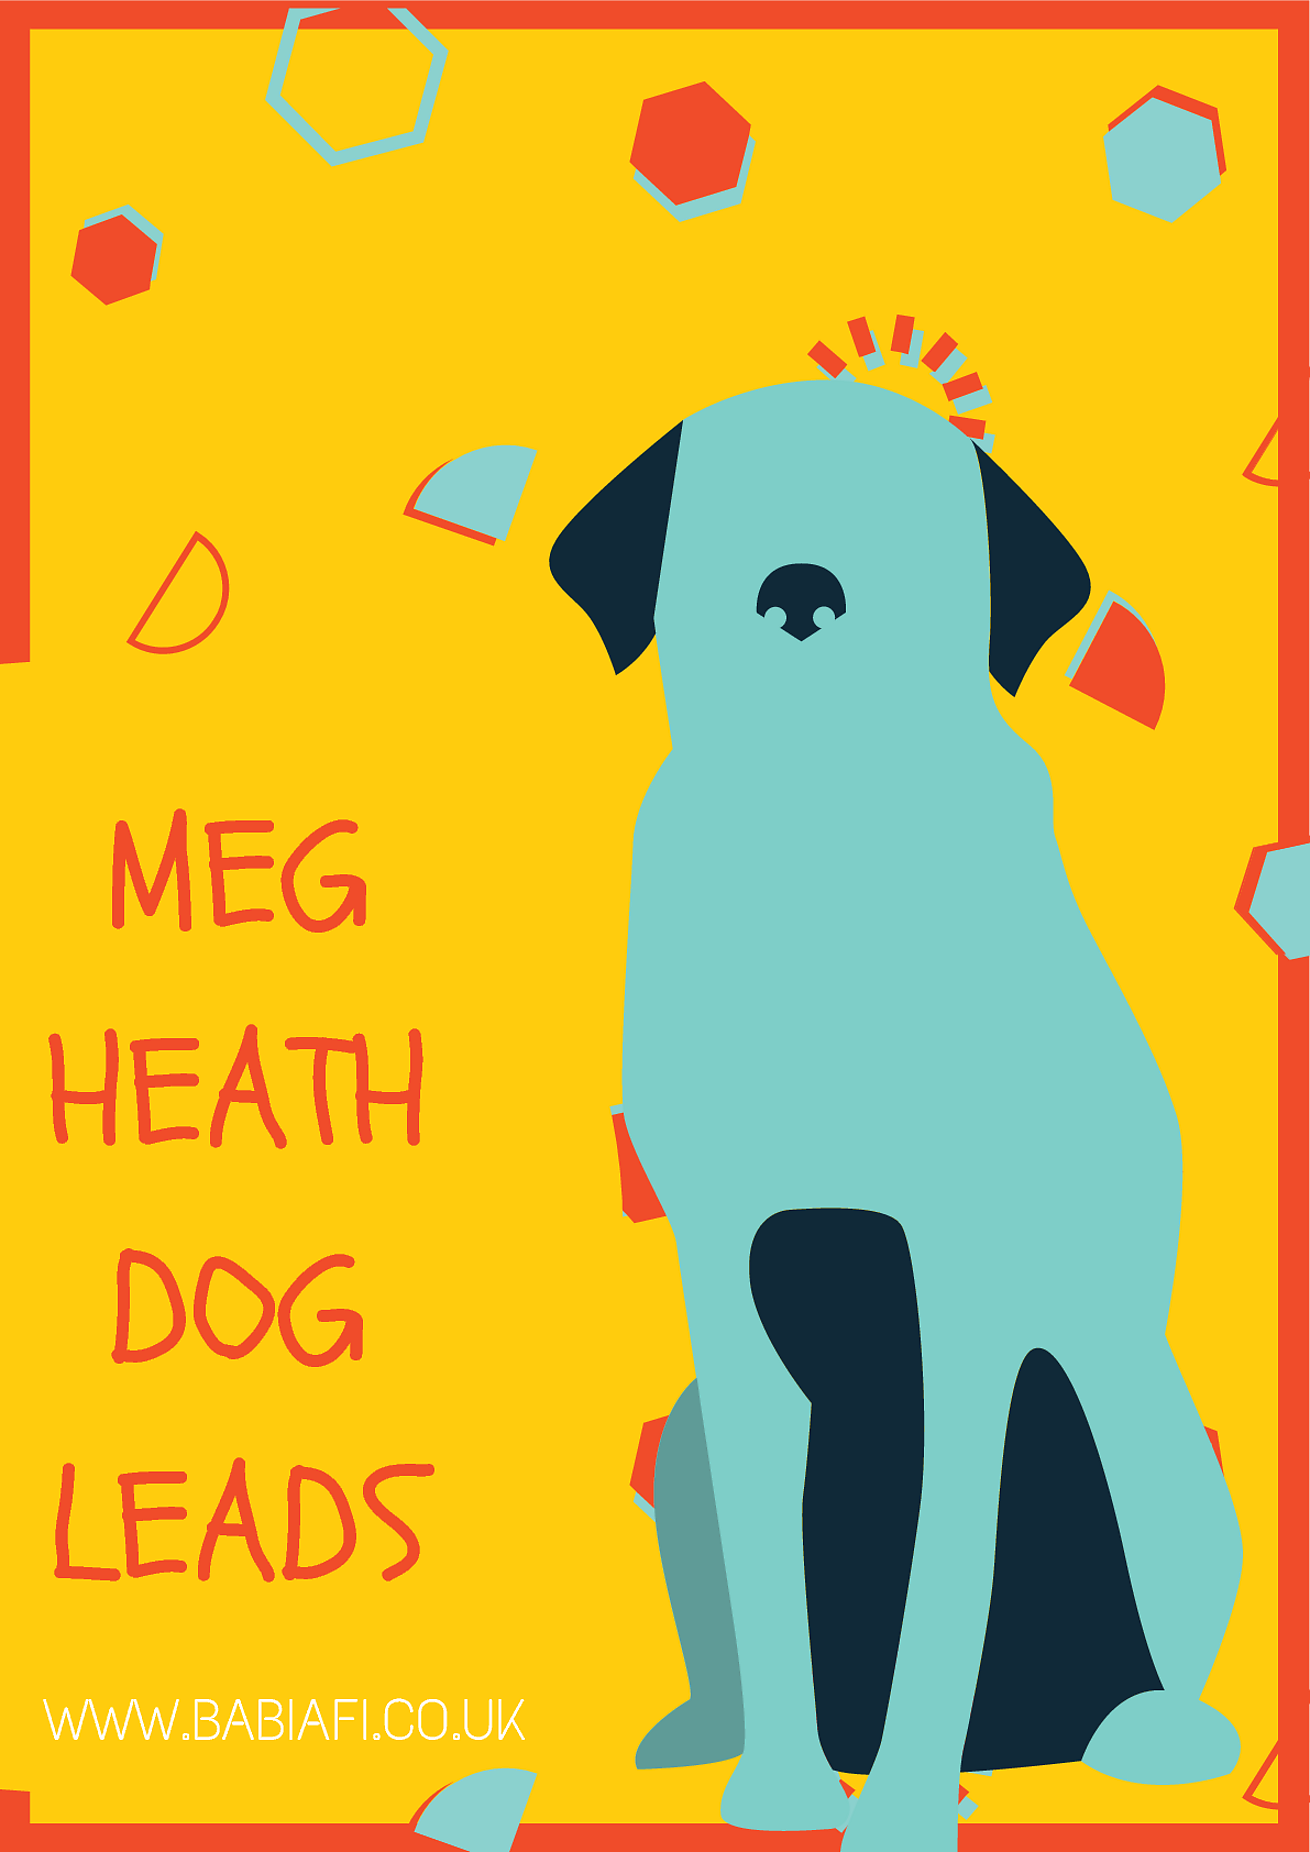 Meg Heath Dog Leads Review